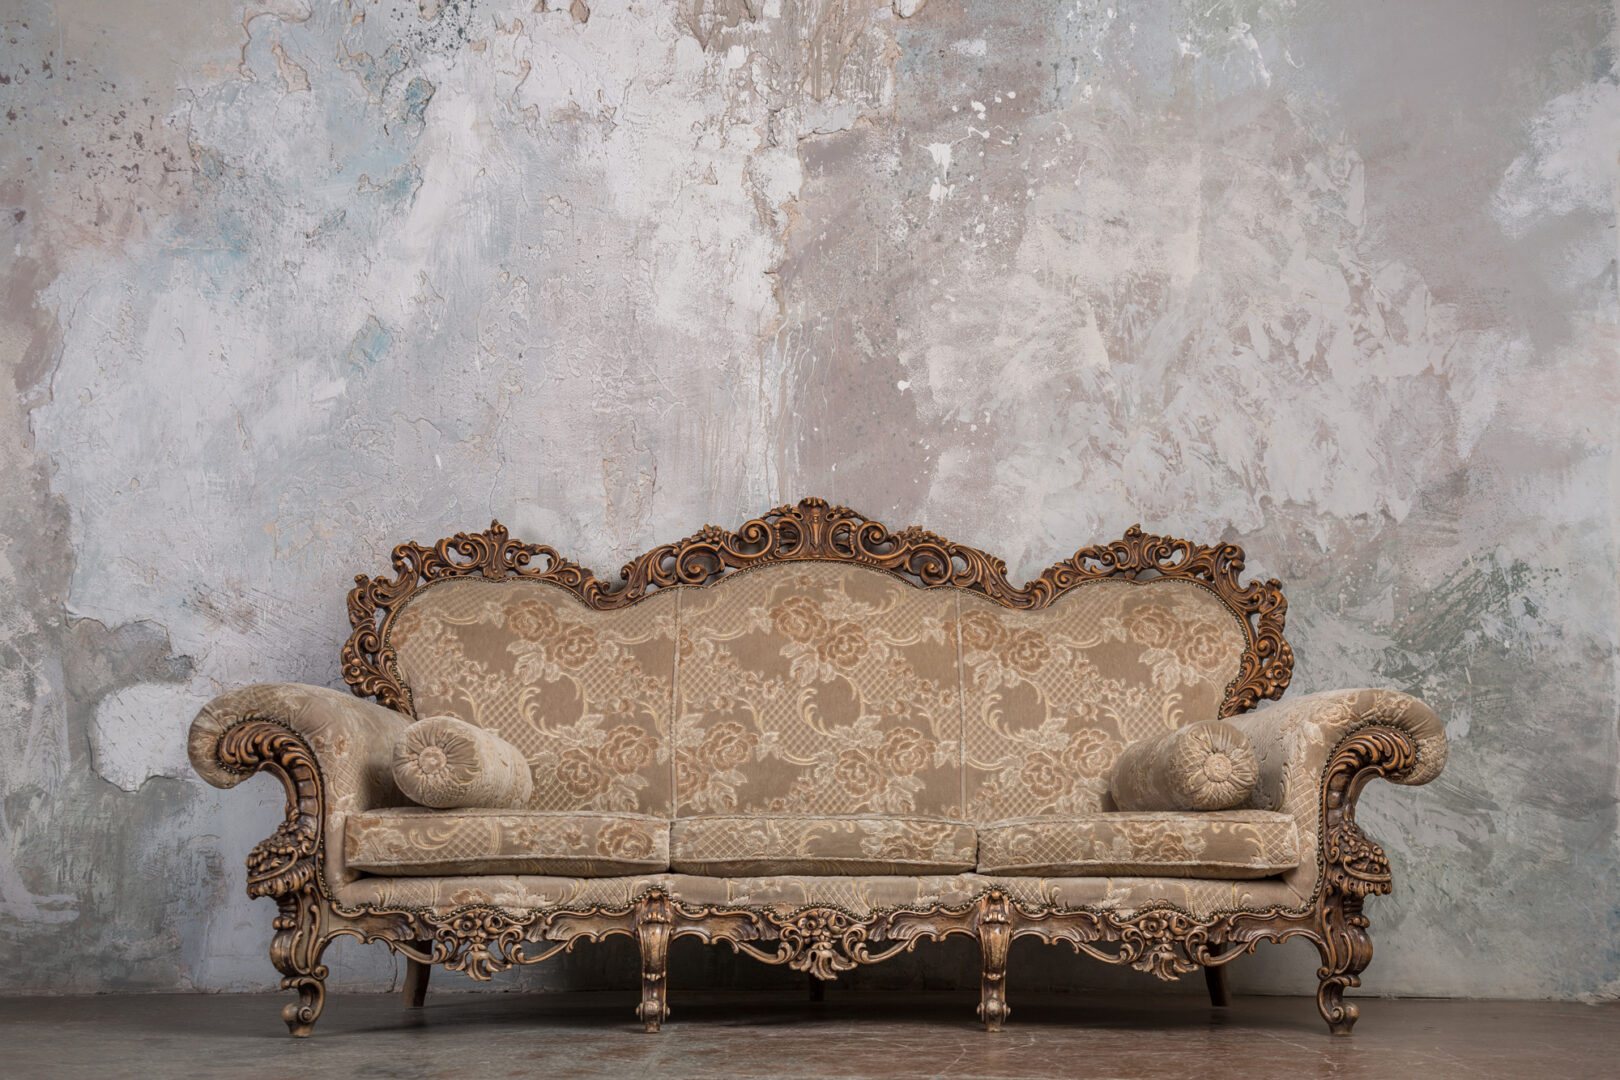 estate sale vintage sofa with brown floral pattern